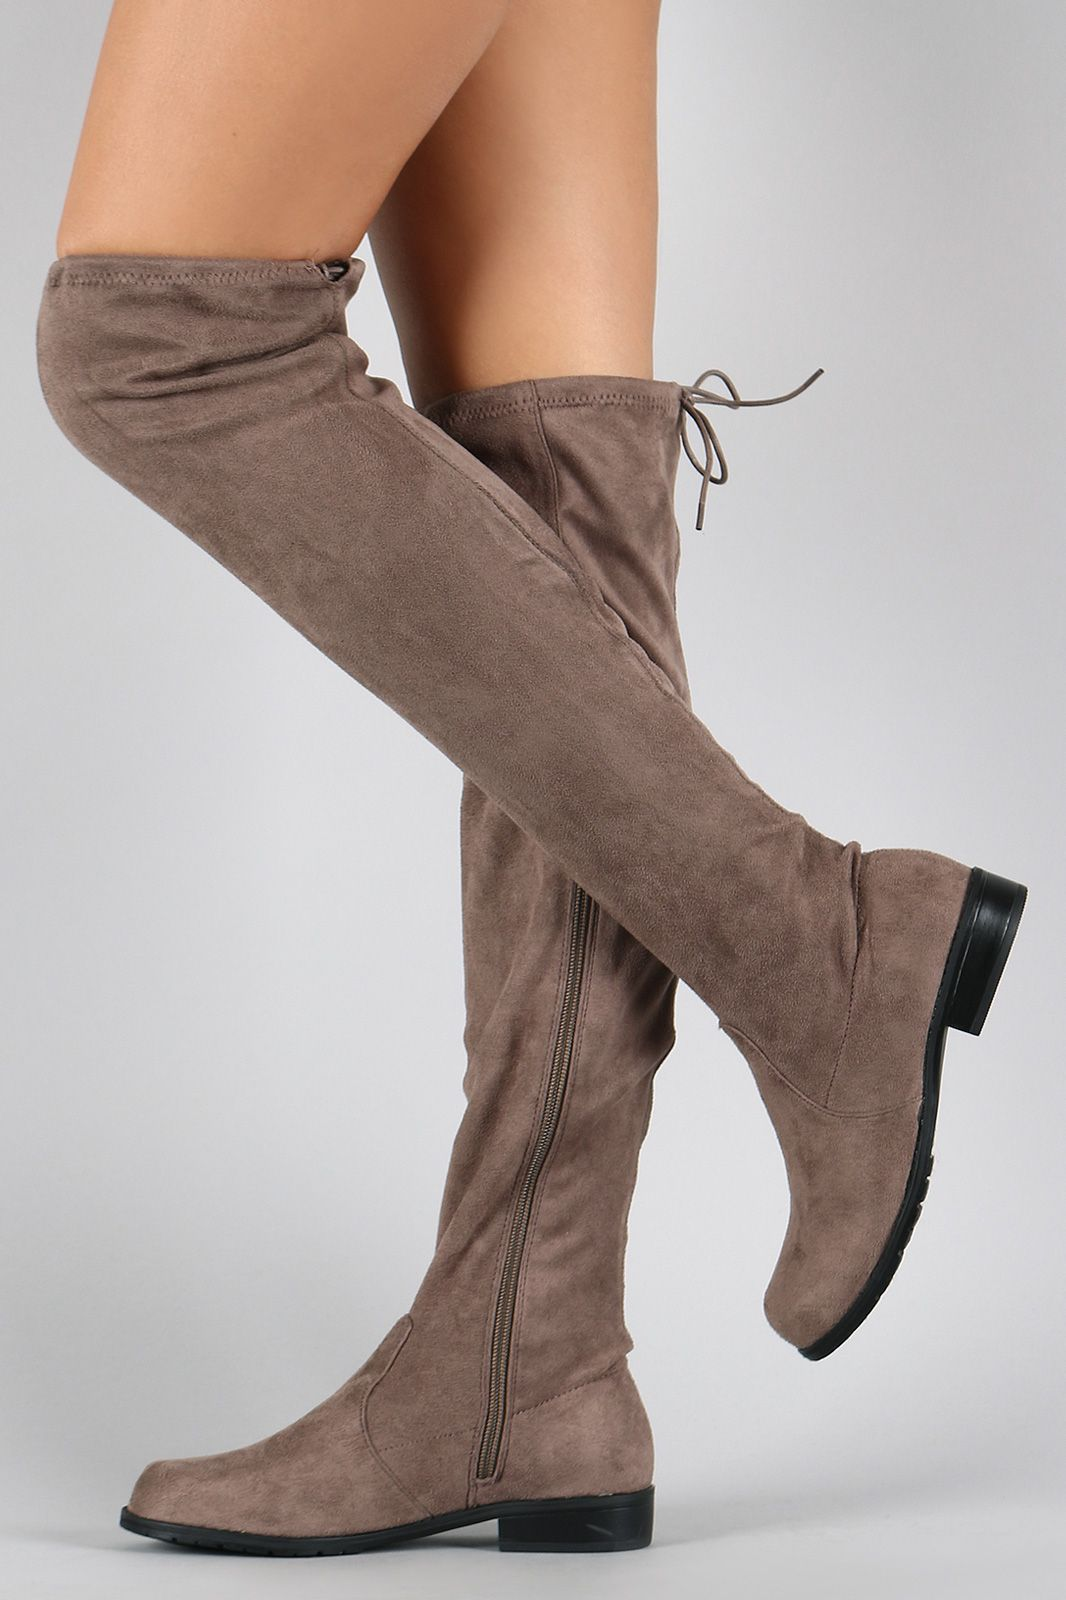 Bamboo Faux Suede Tied Flat Flat Tied Thigh High Boot Zapatos Pinterest fcf5c8